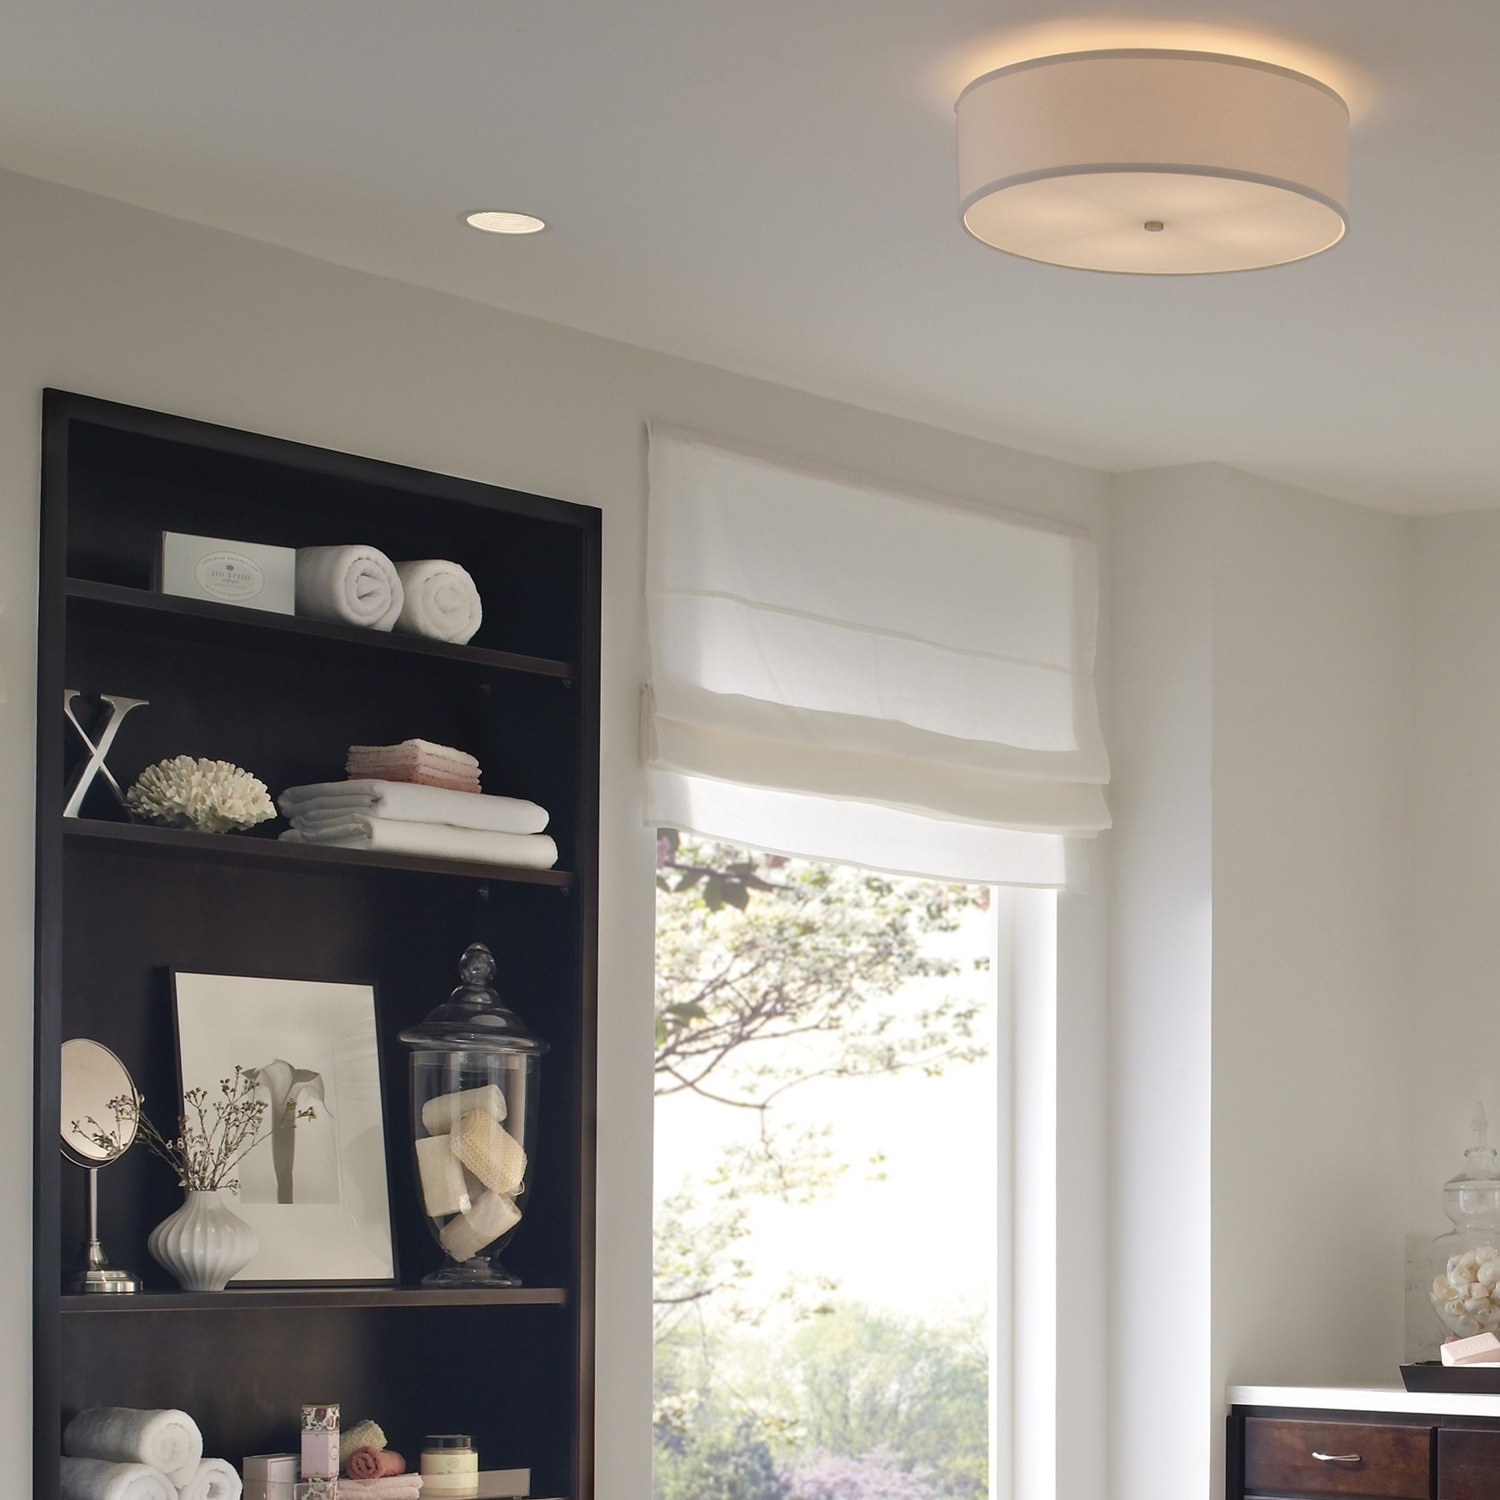 Design Necessities Lighting For 2019 Chandeliers For Low Ceilings (View 3 of 20)